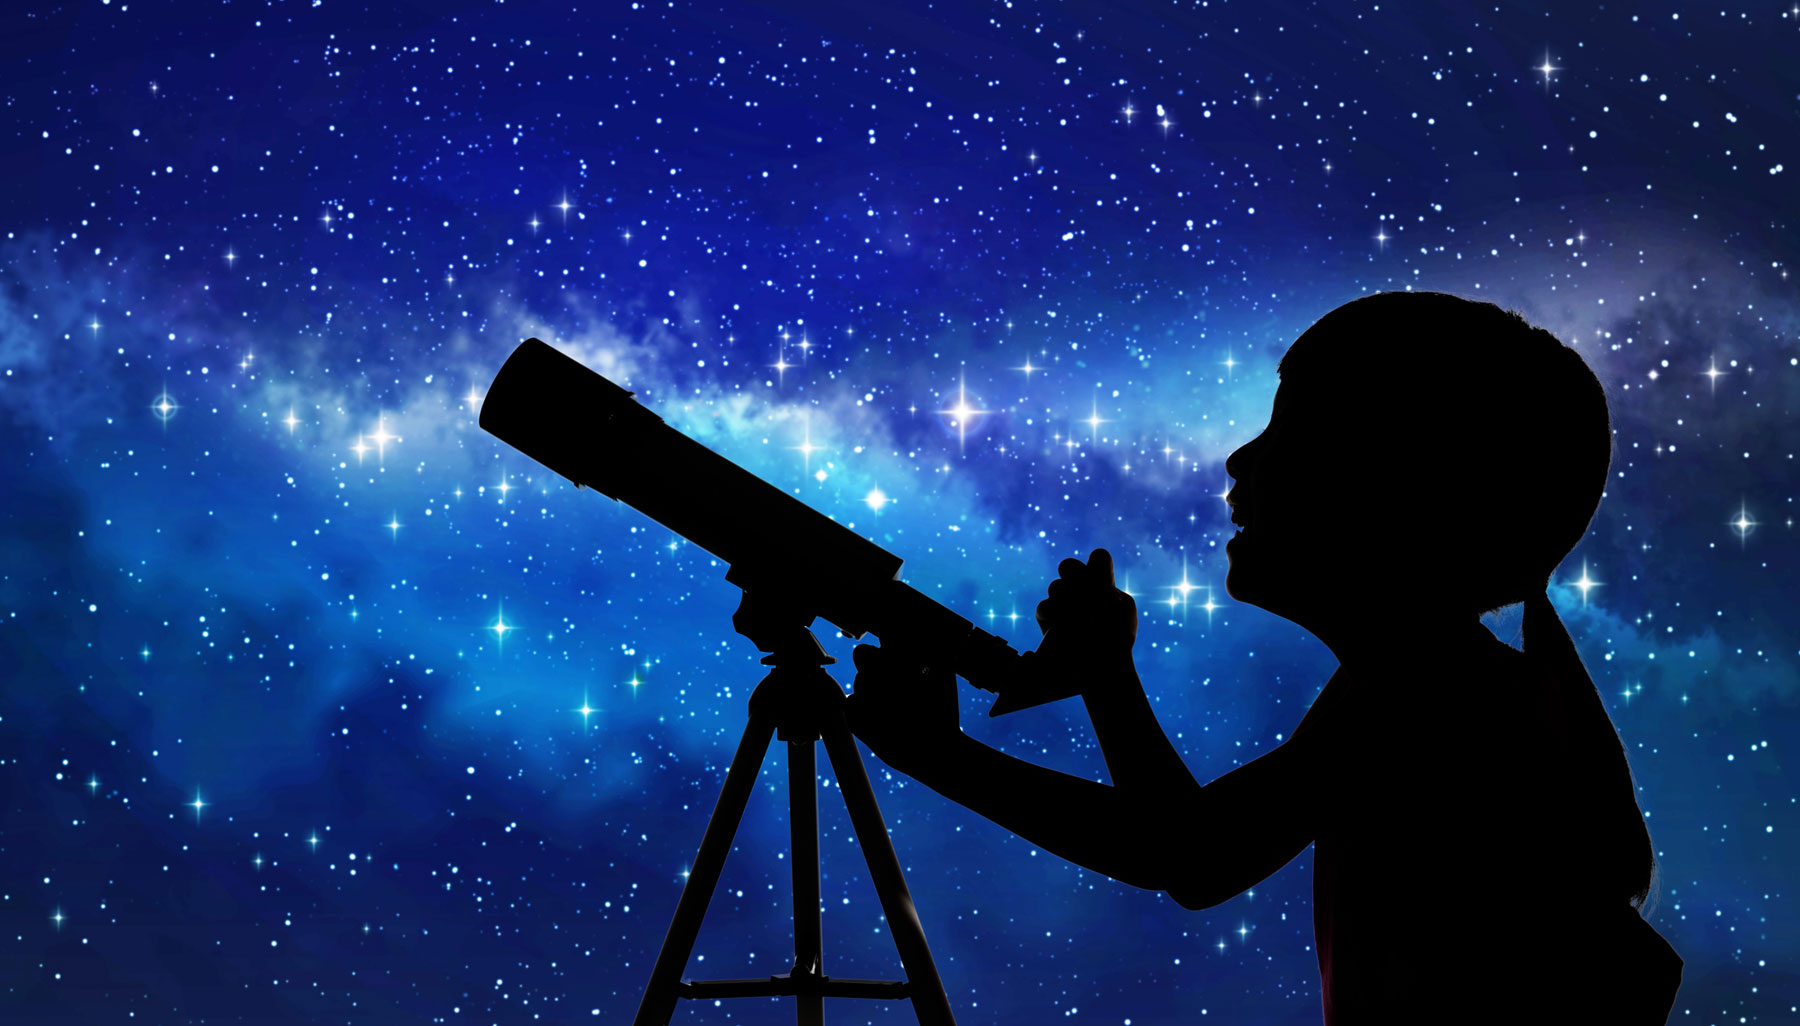 young girl with telescope looking at stars